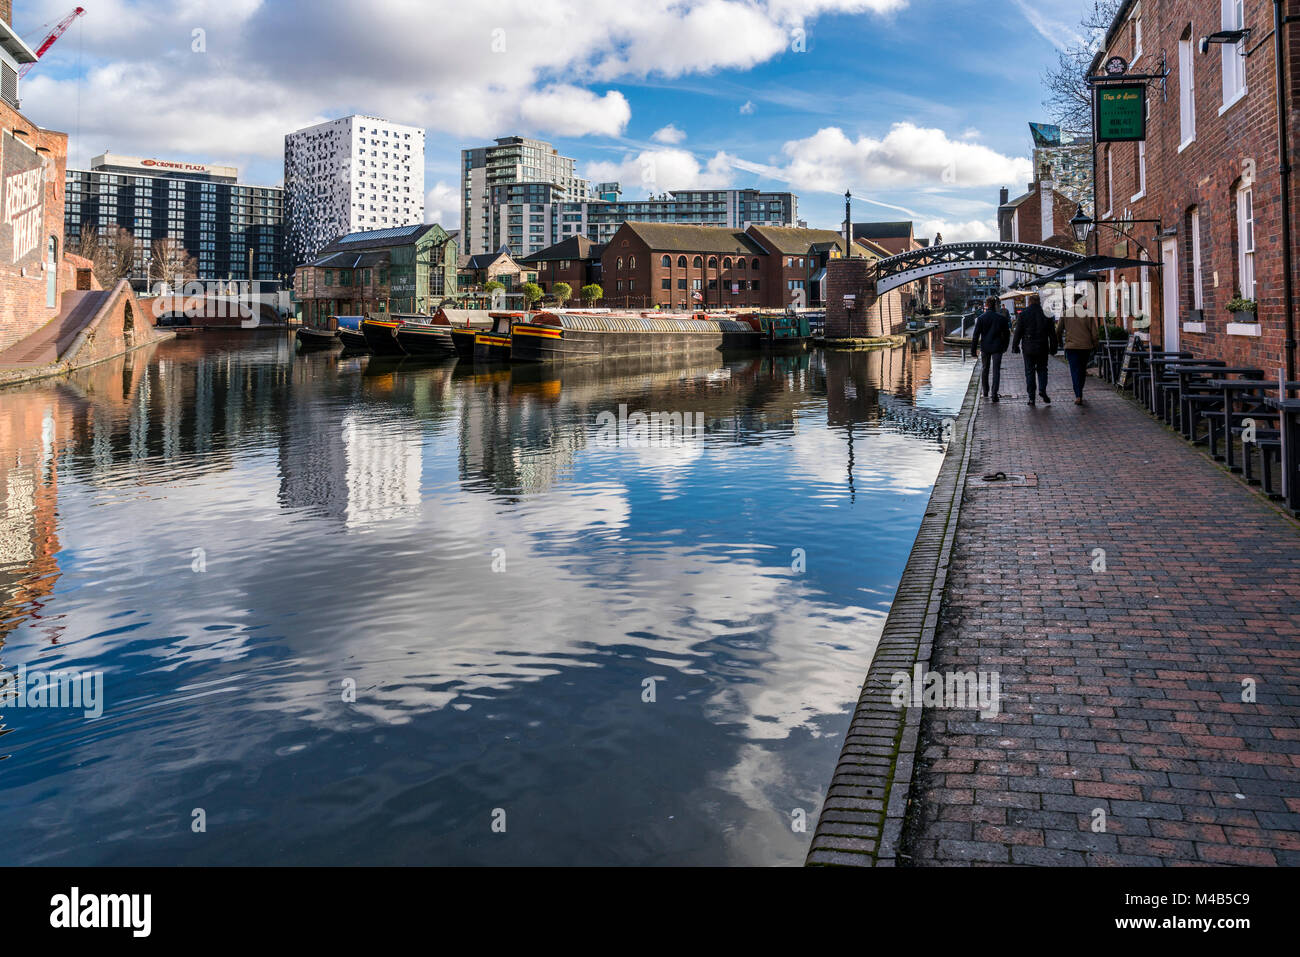 Views of the canal with reflections of people and buildings in Brindley Place Birmingham, UK - Stock Image